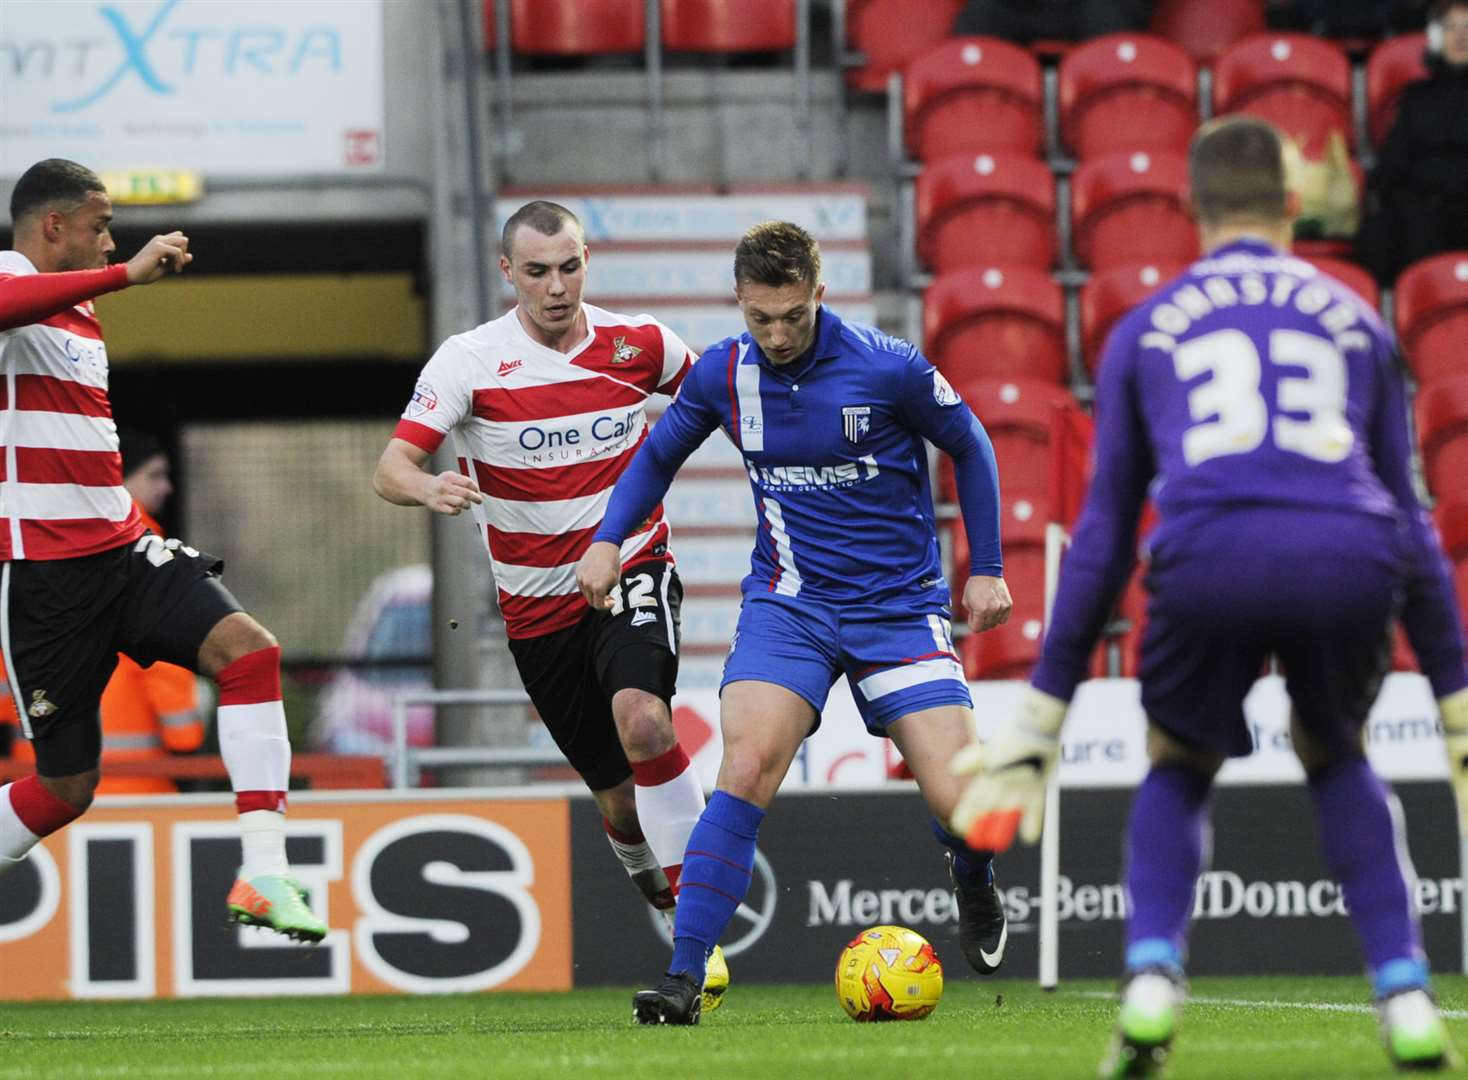 Doncaster Rovers v Gillingham - in pictures